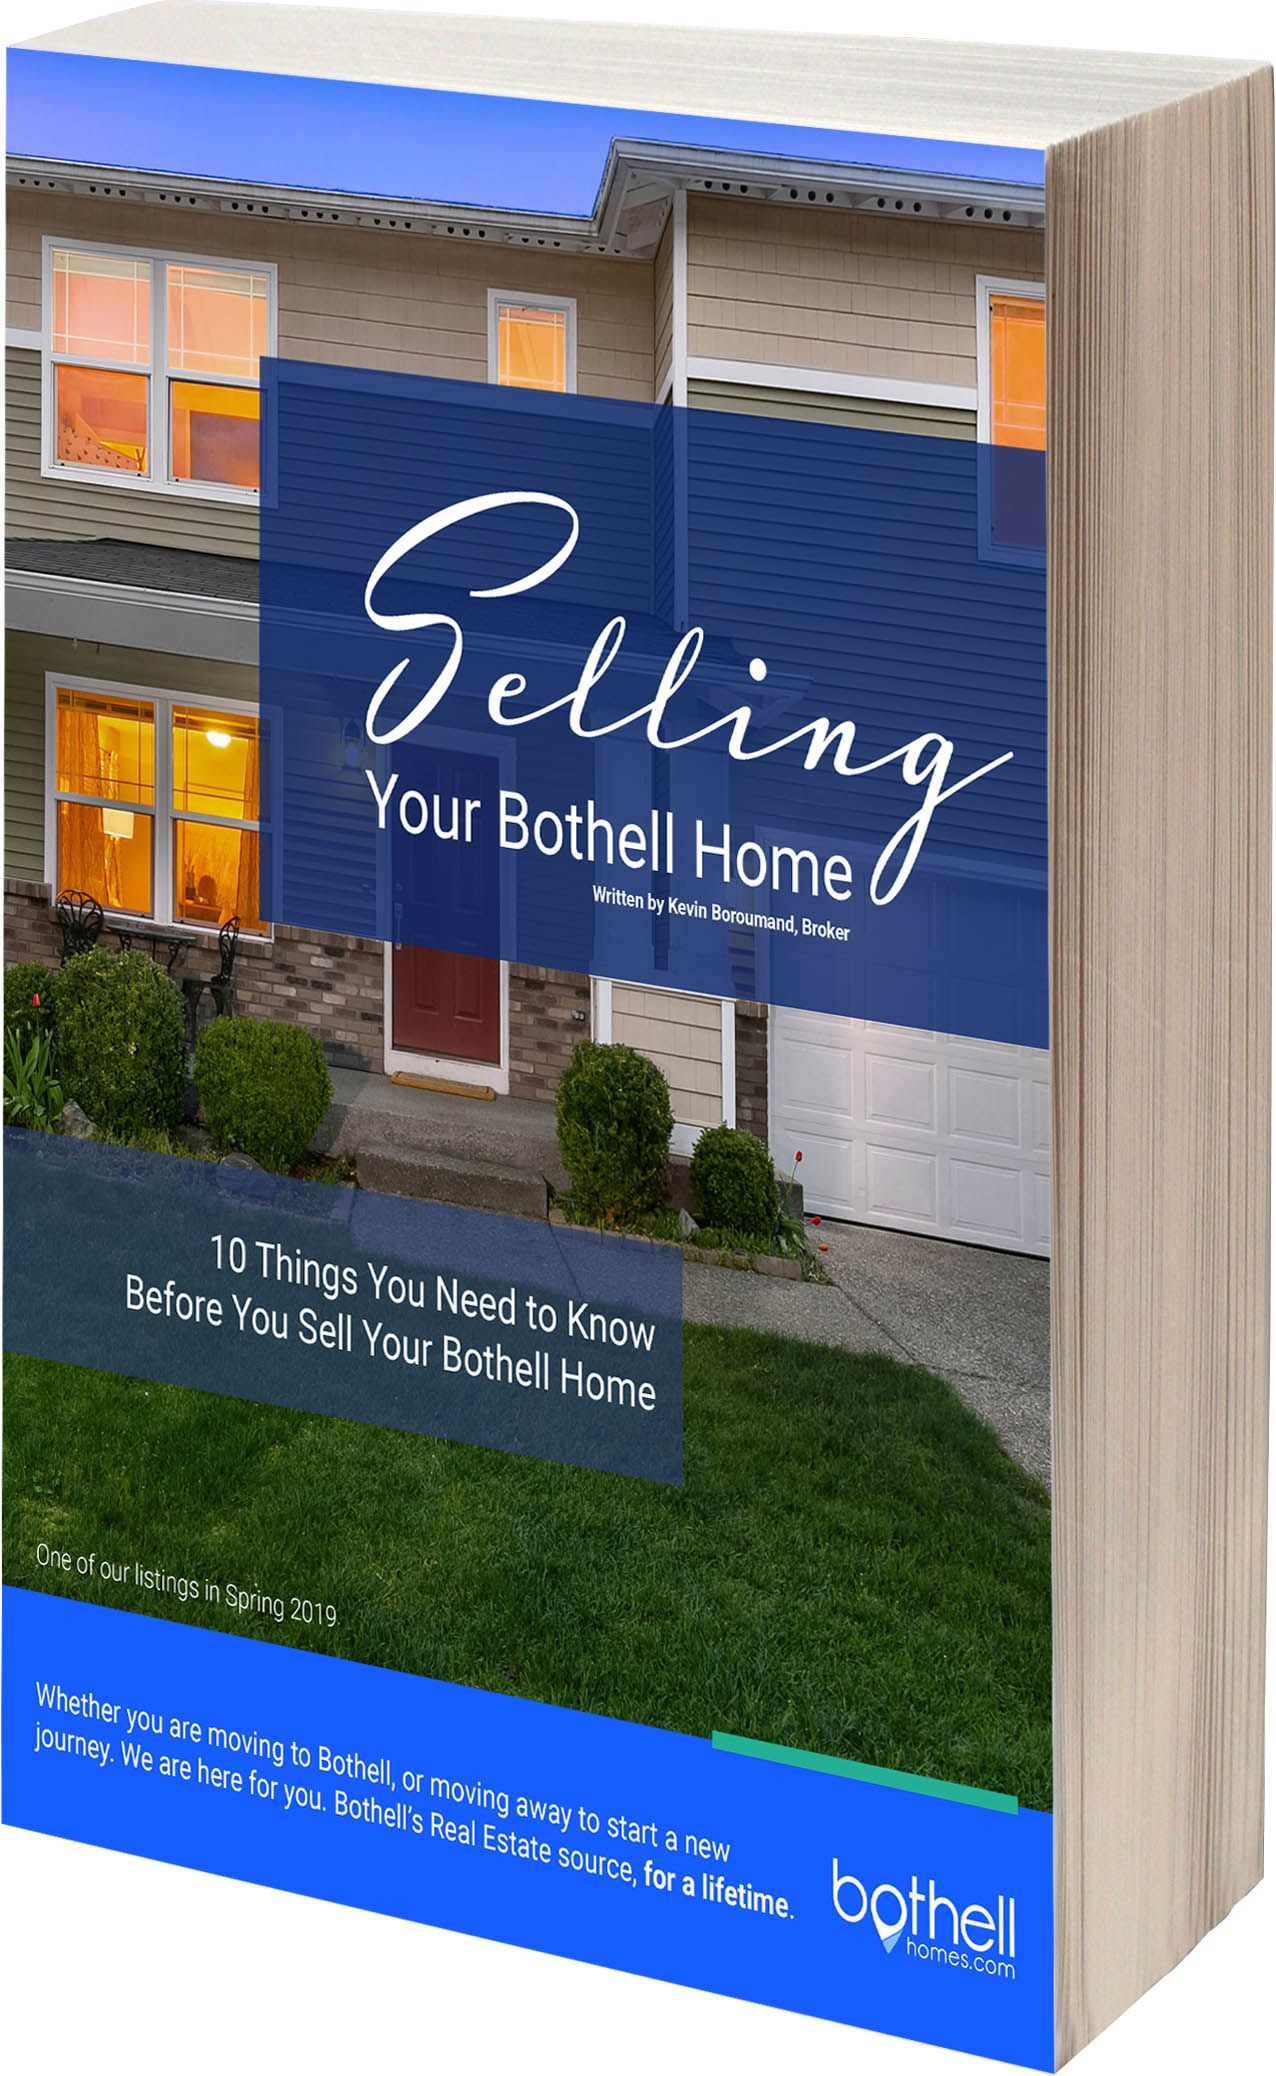 Bothell Home Sellers Guide